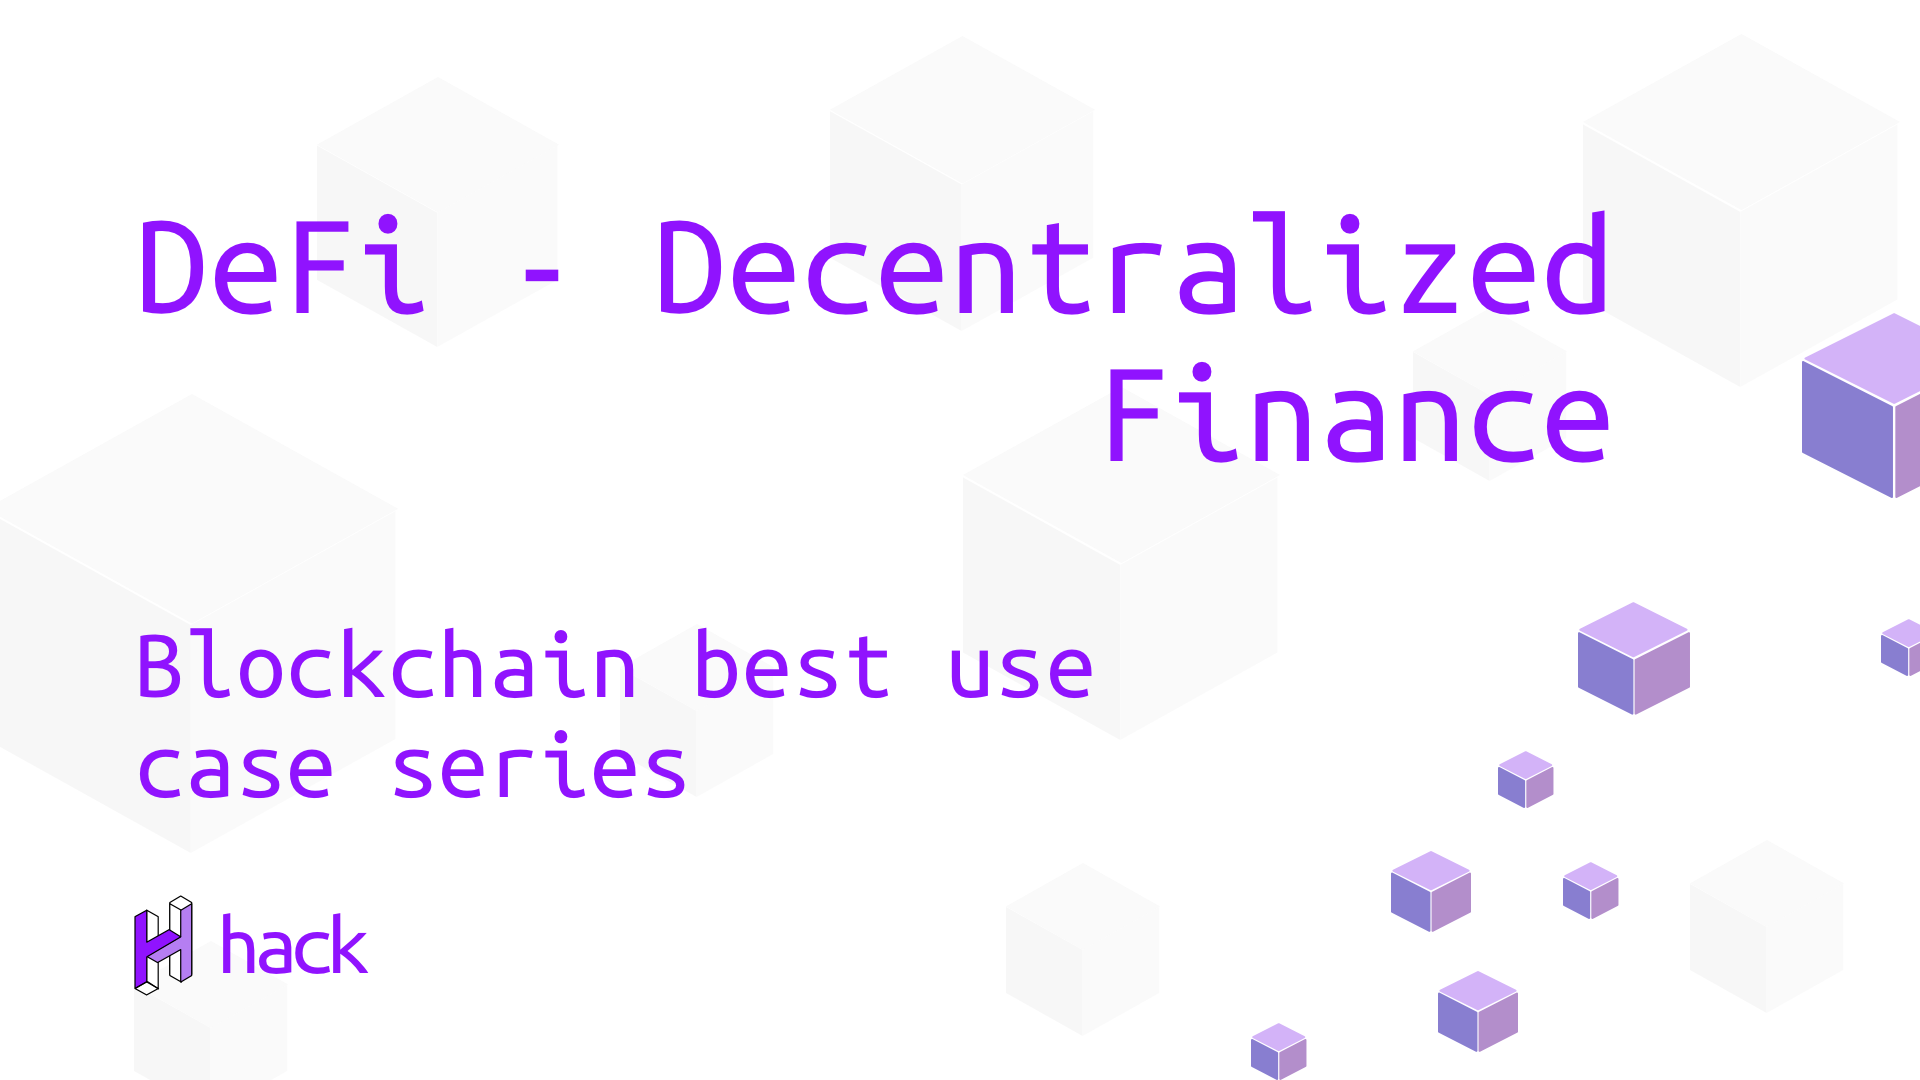 DeFi - Decentralized Finance 1